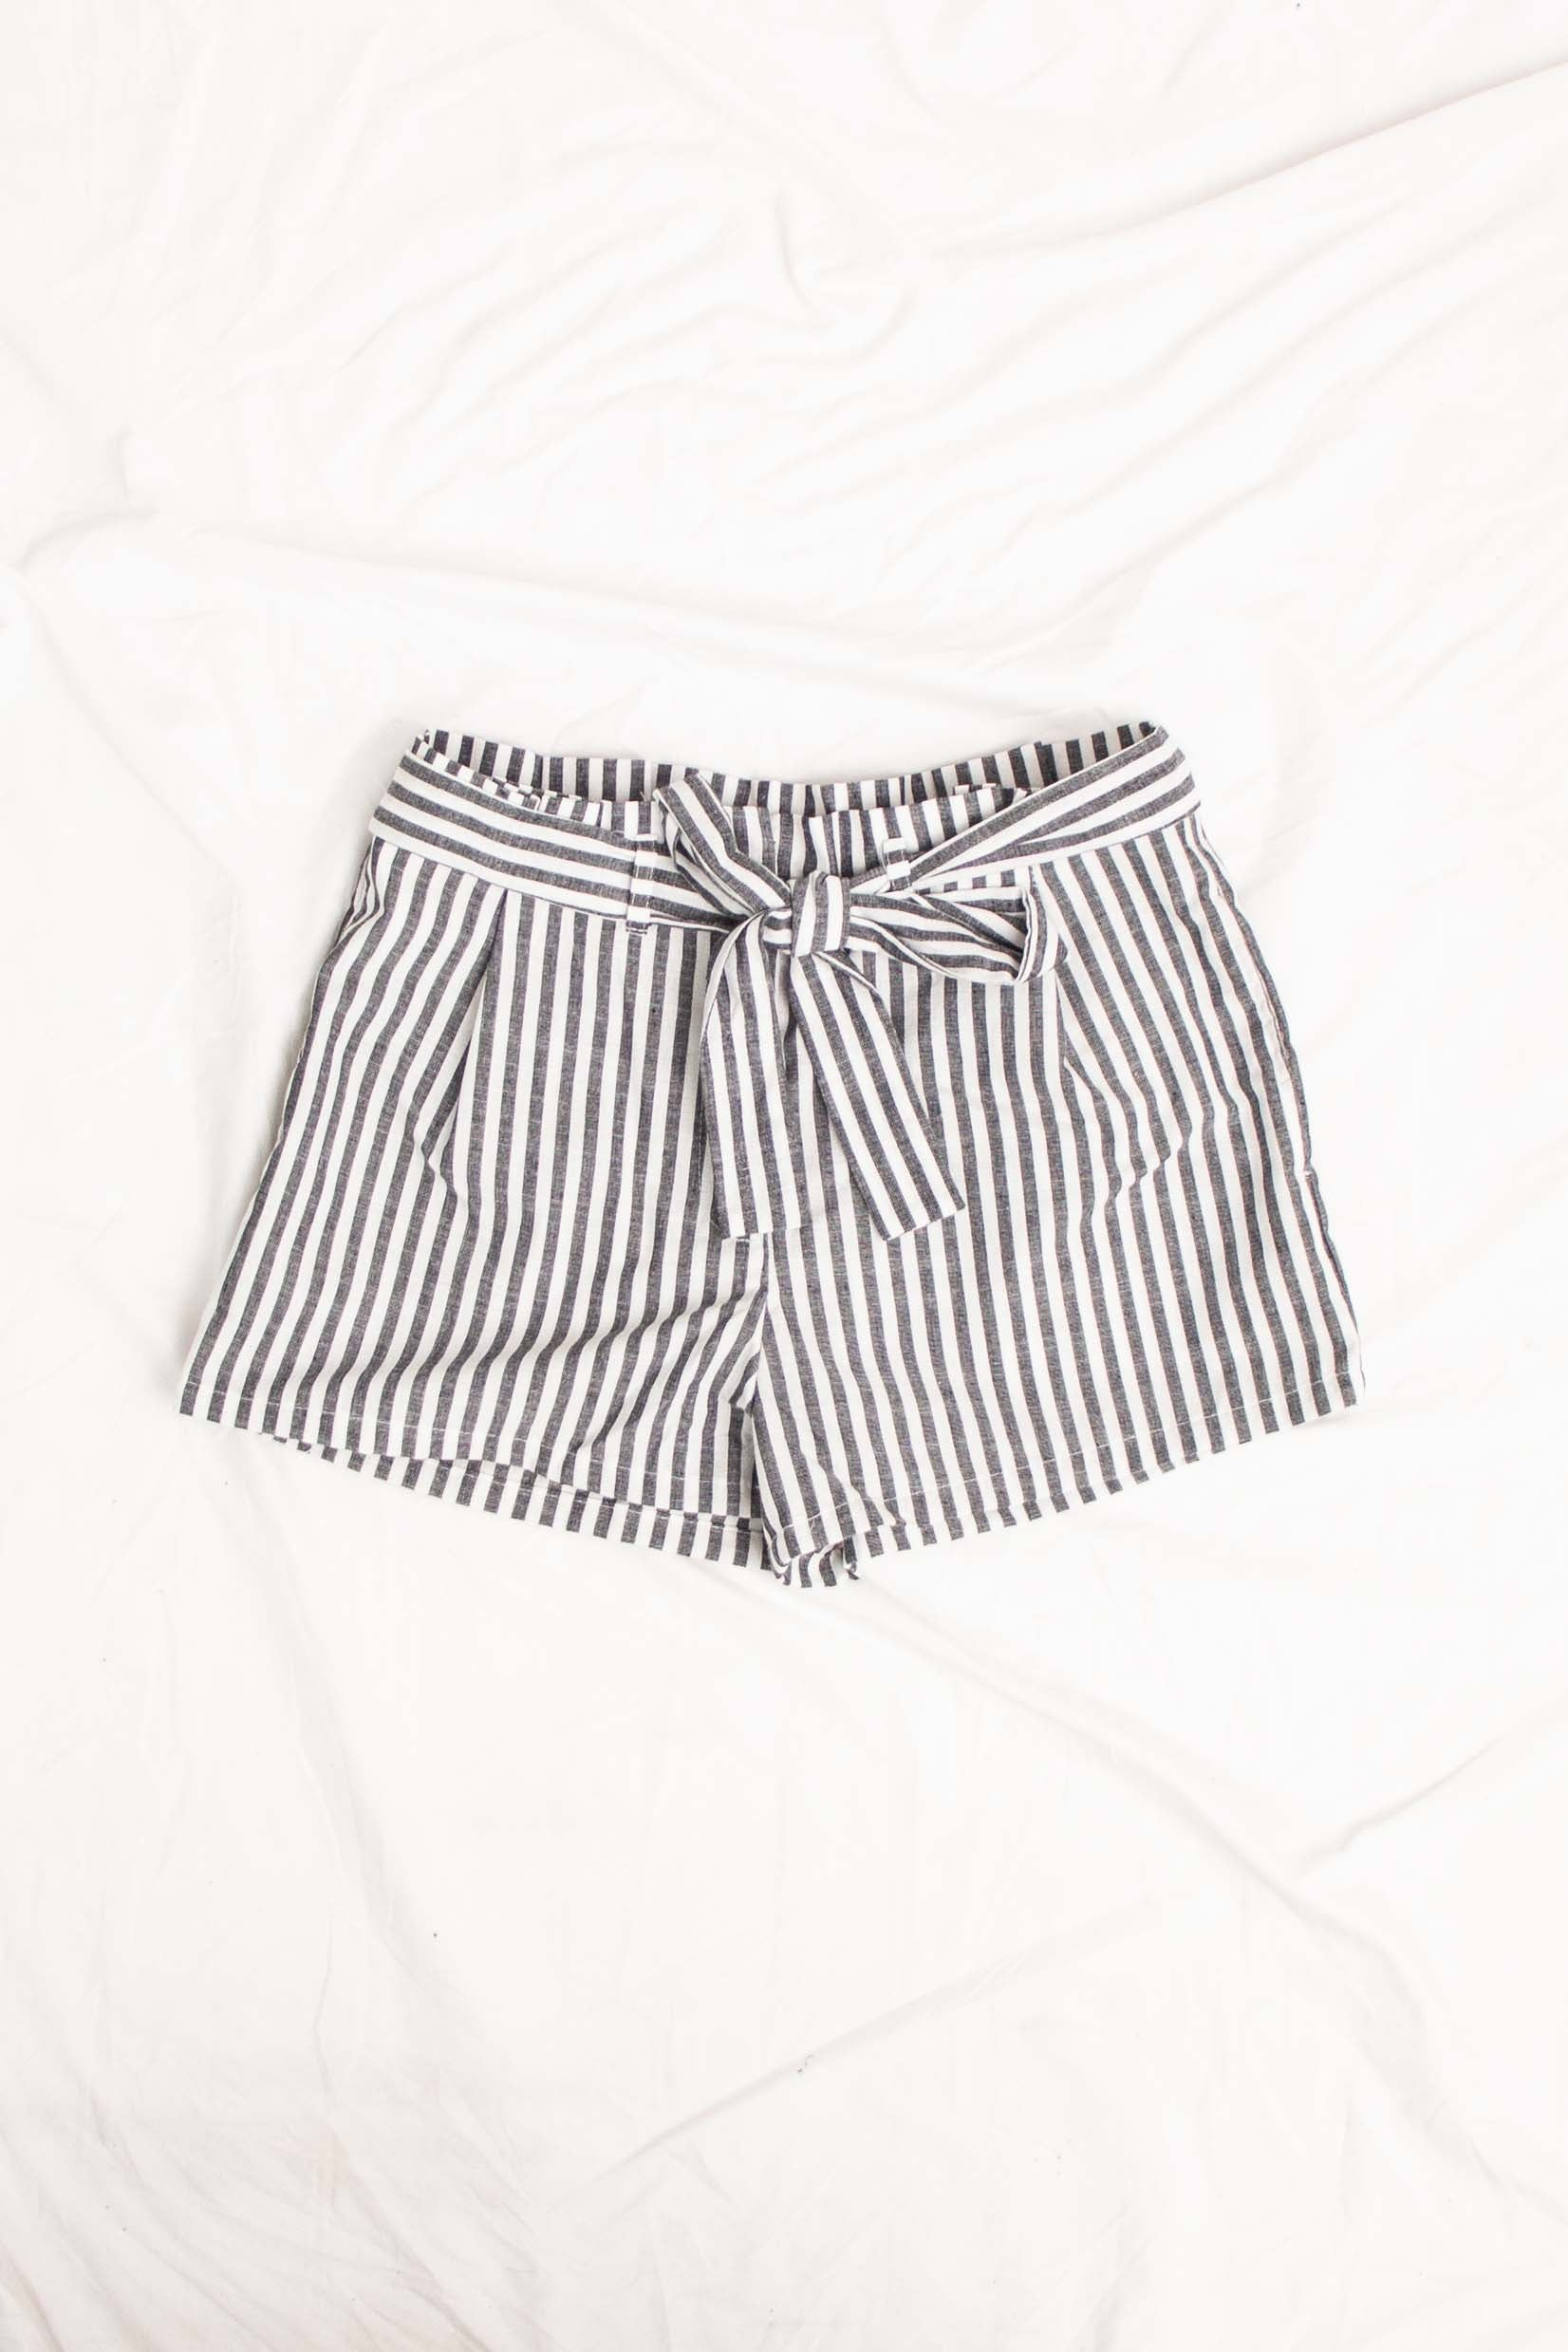 Perfect Picnic Shorts in Black